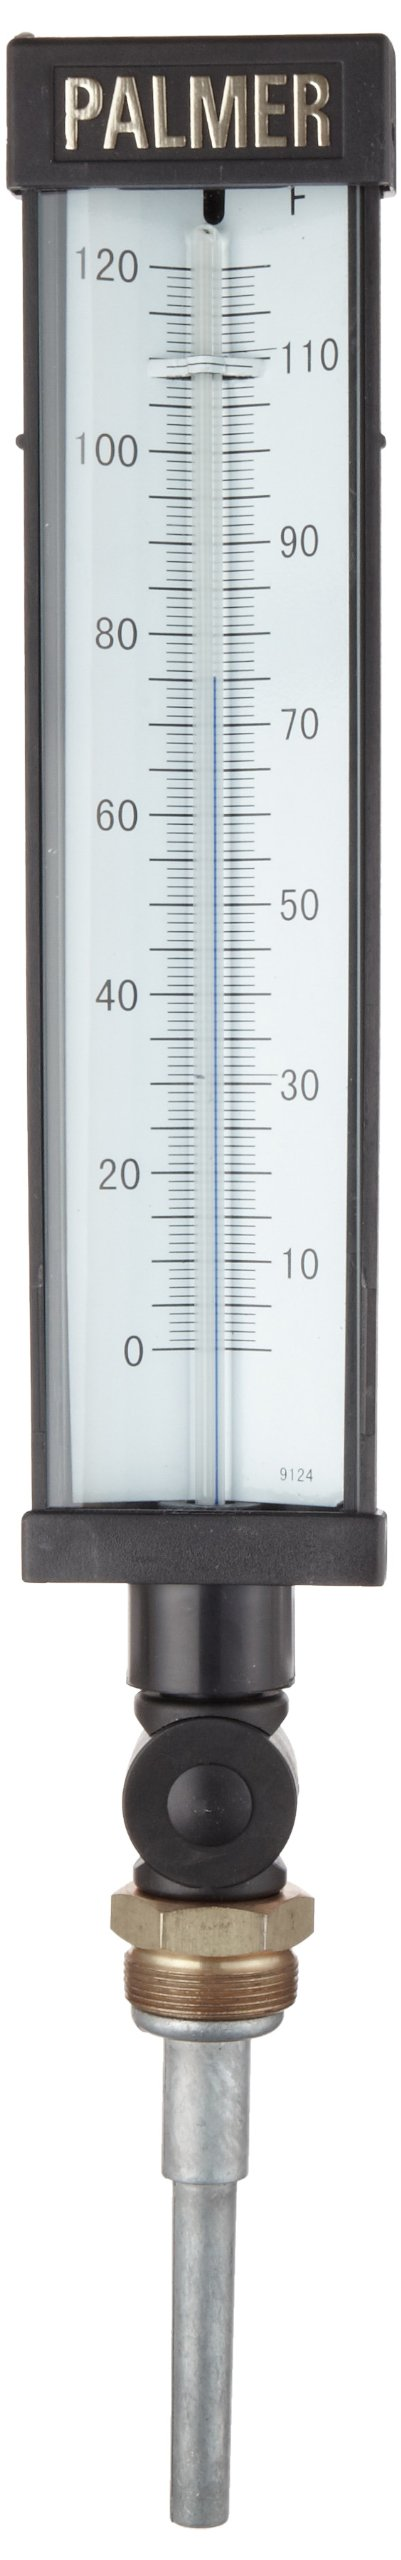 Palmer 9FLSB3.50/120F Plastic Economy Industrial Thermometer, Spirit Fill, 3.5'' Stem, 9'' Scale Case, 0-120 Degrees F Temperature Range